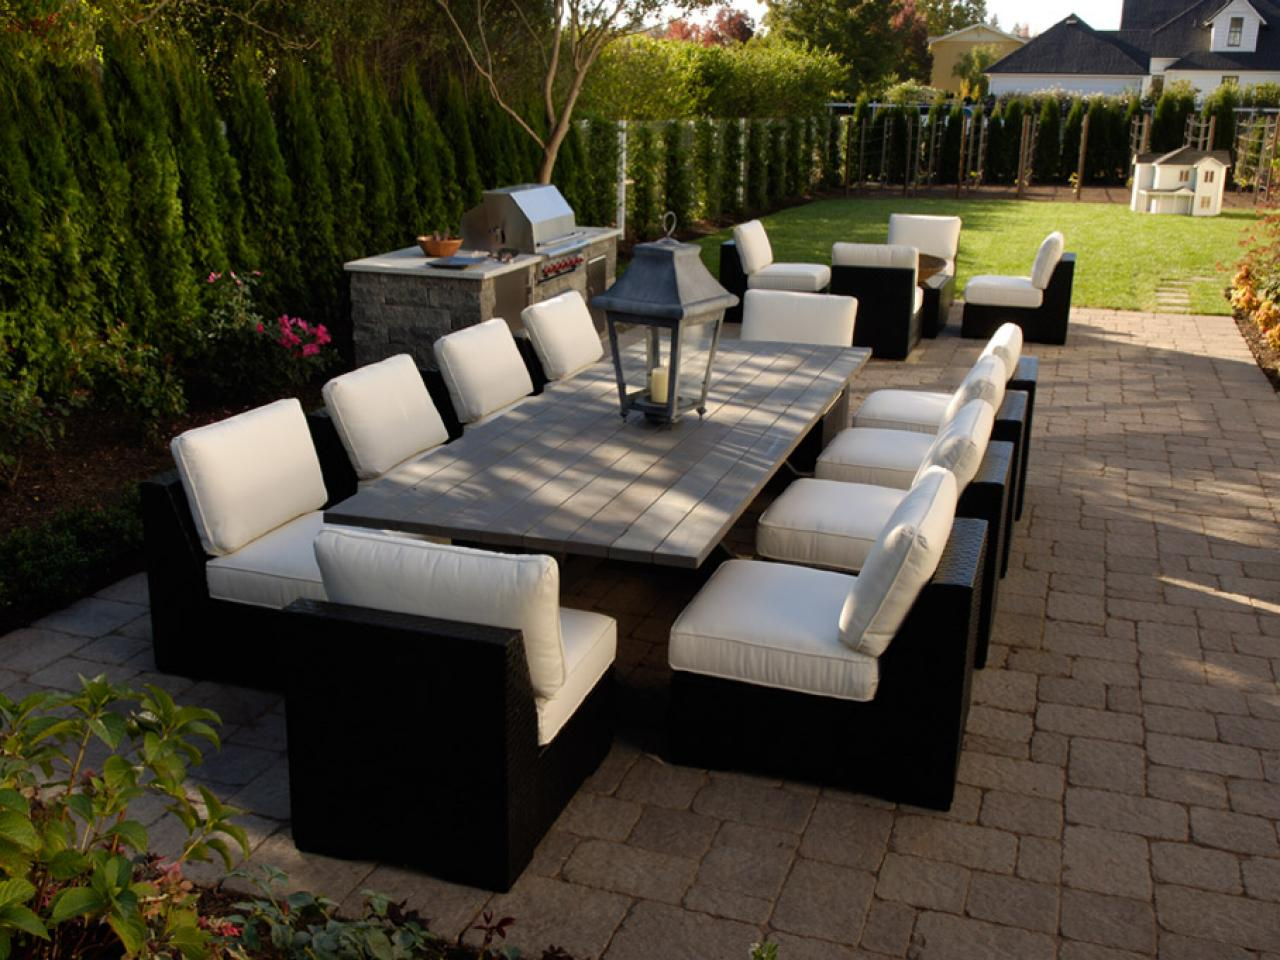 Furnishing your outdoor room hgtv for Cool outdoor furniture ideas